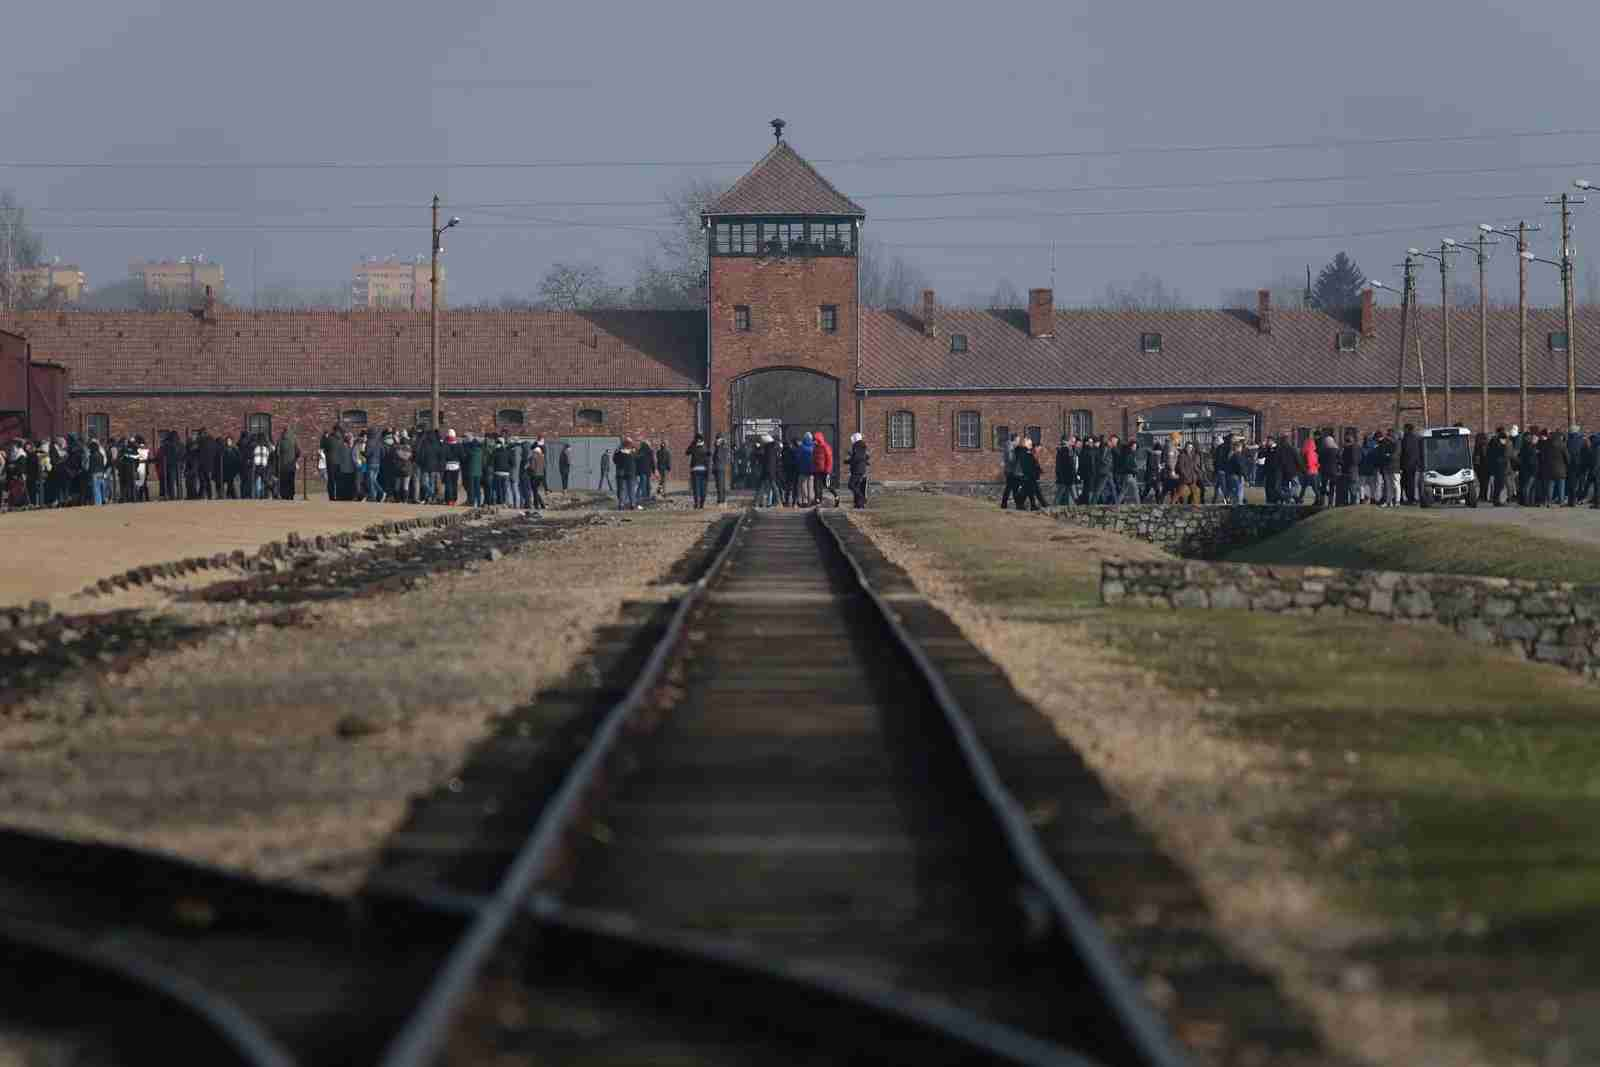 The Auschwitz Concentration Camp Memorial. (Photo by Sean Gallup/Getty Images)